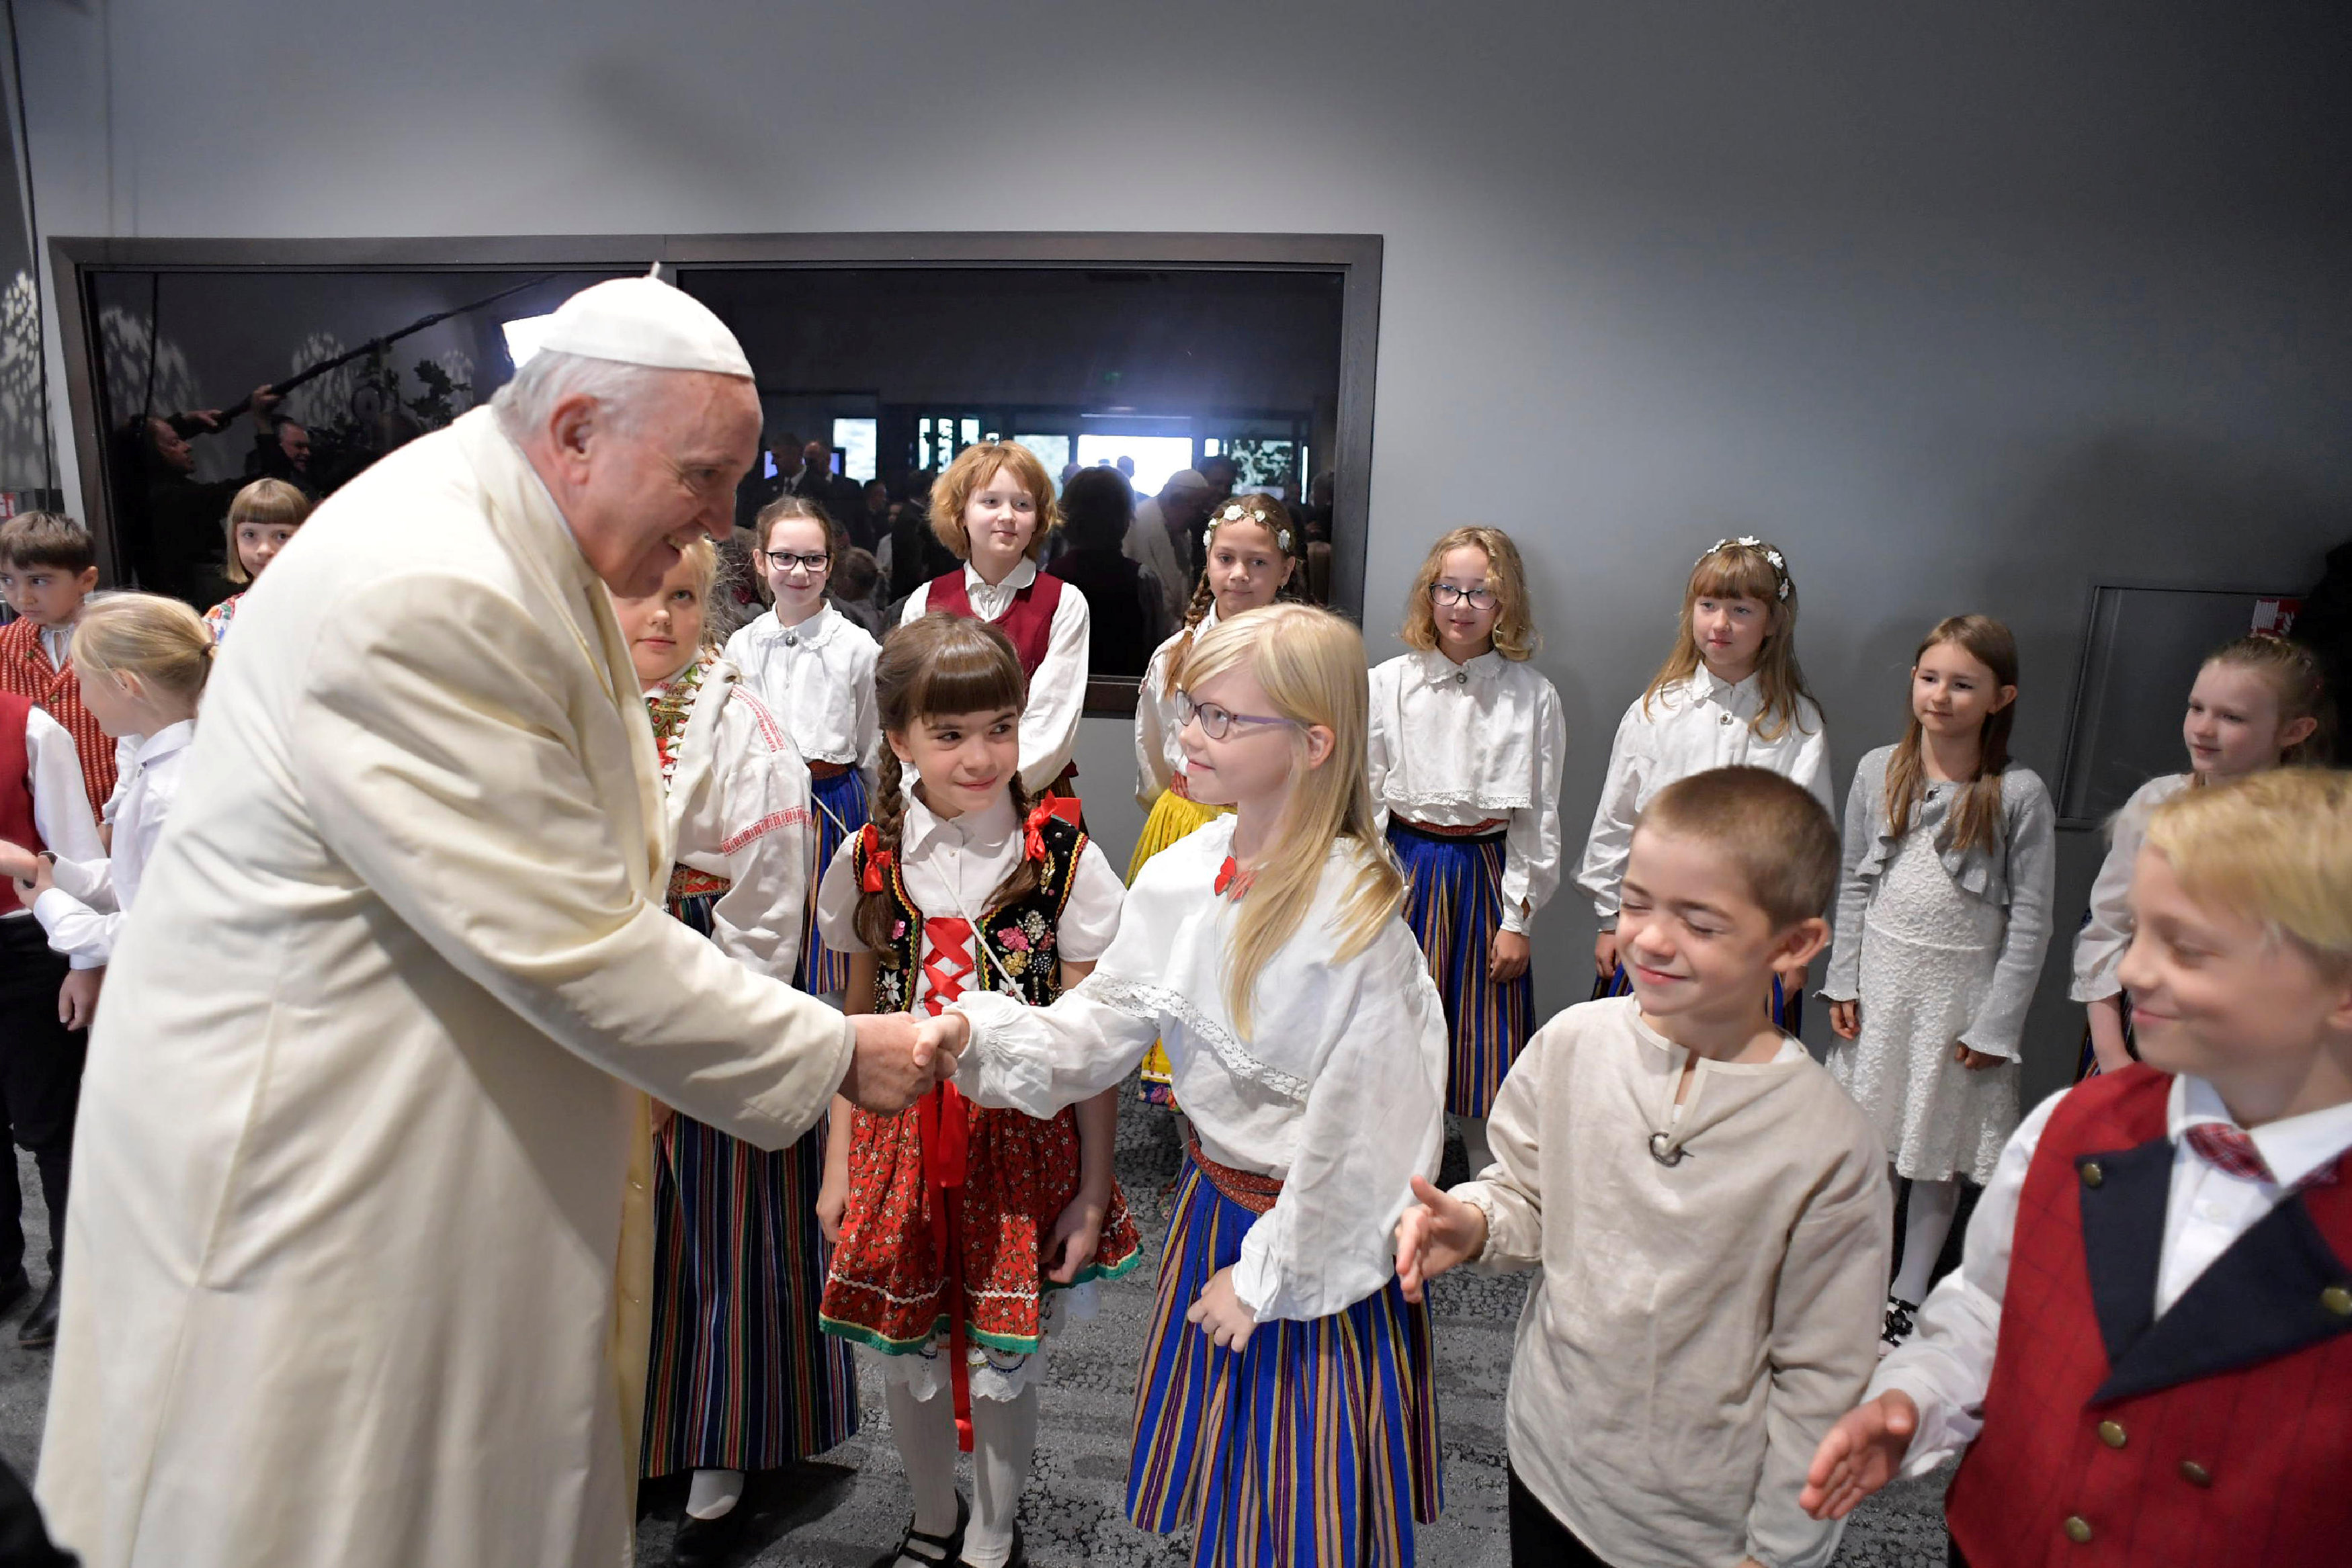 Pope Francis is welcomed at the airport in Tallinn